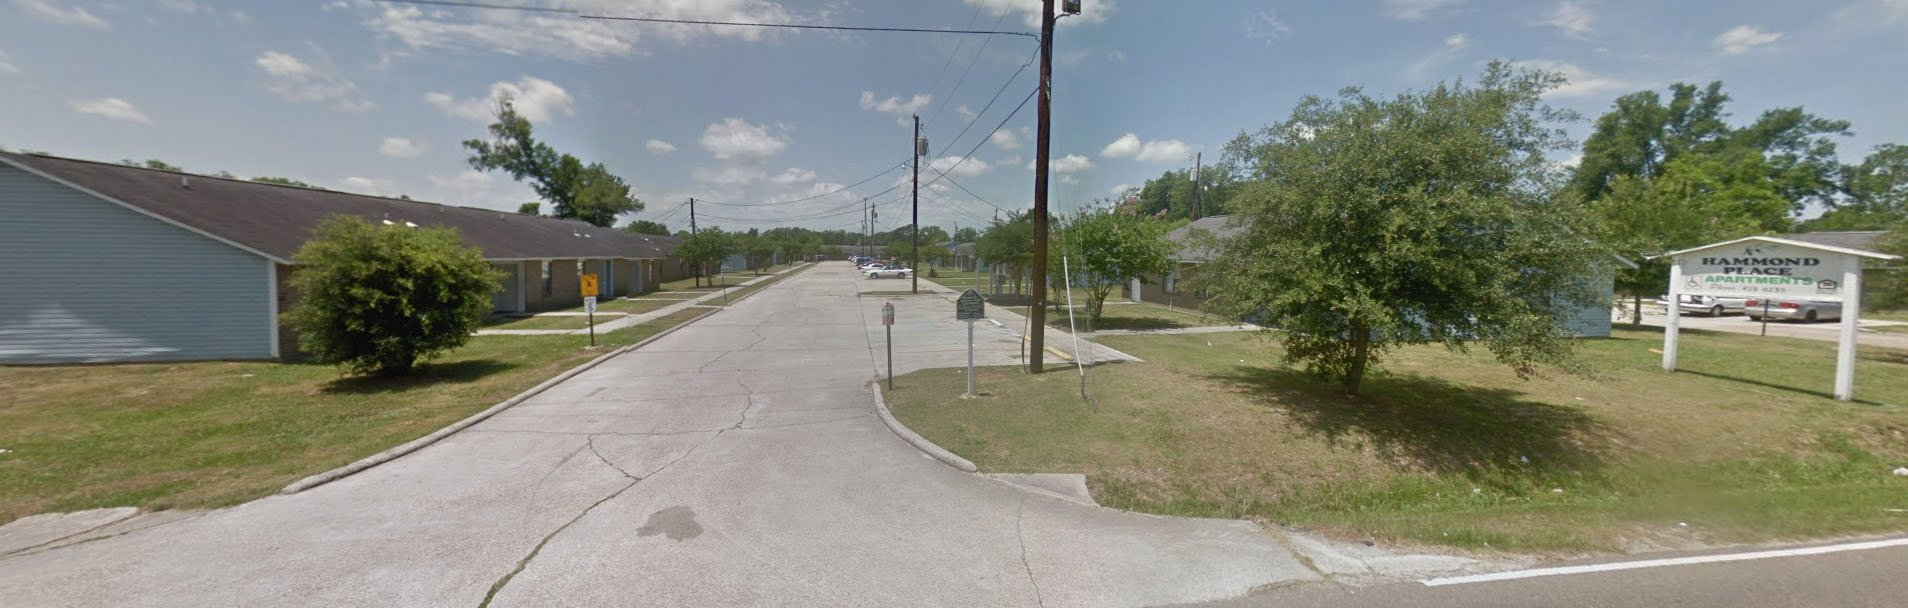 affordable housing in hammond, la | rentalhousingdeals